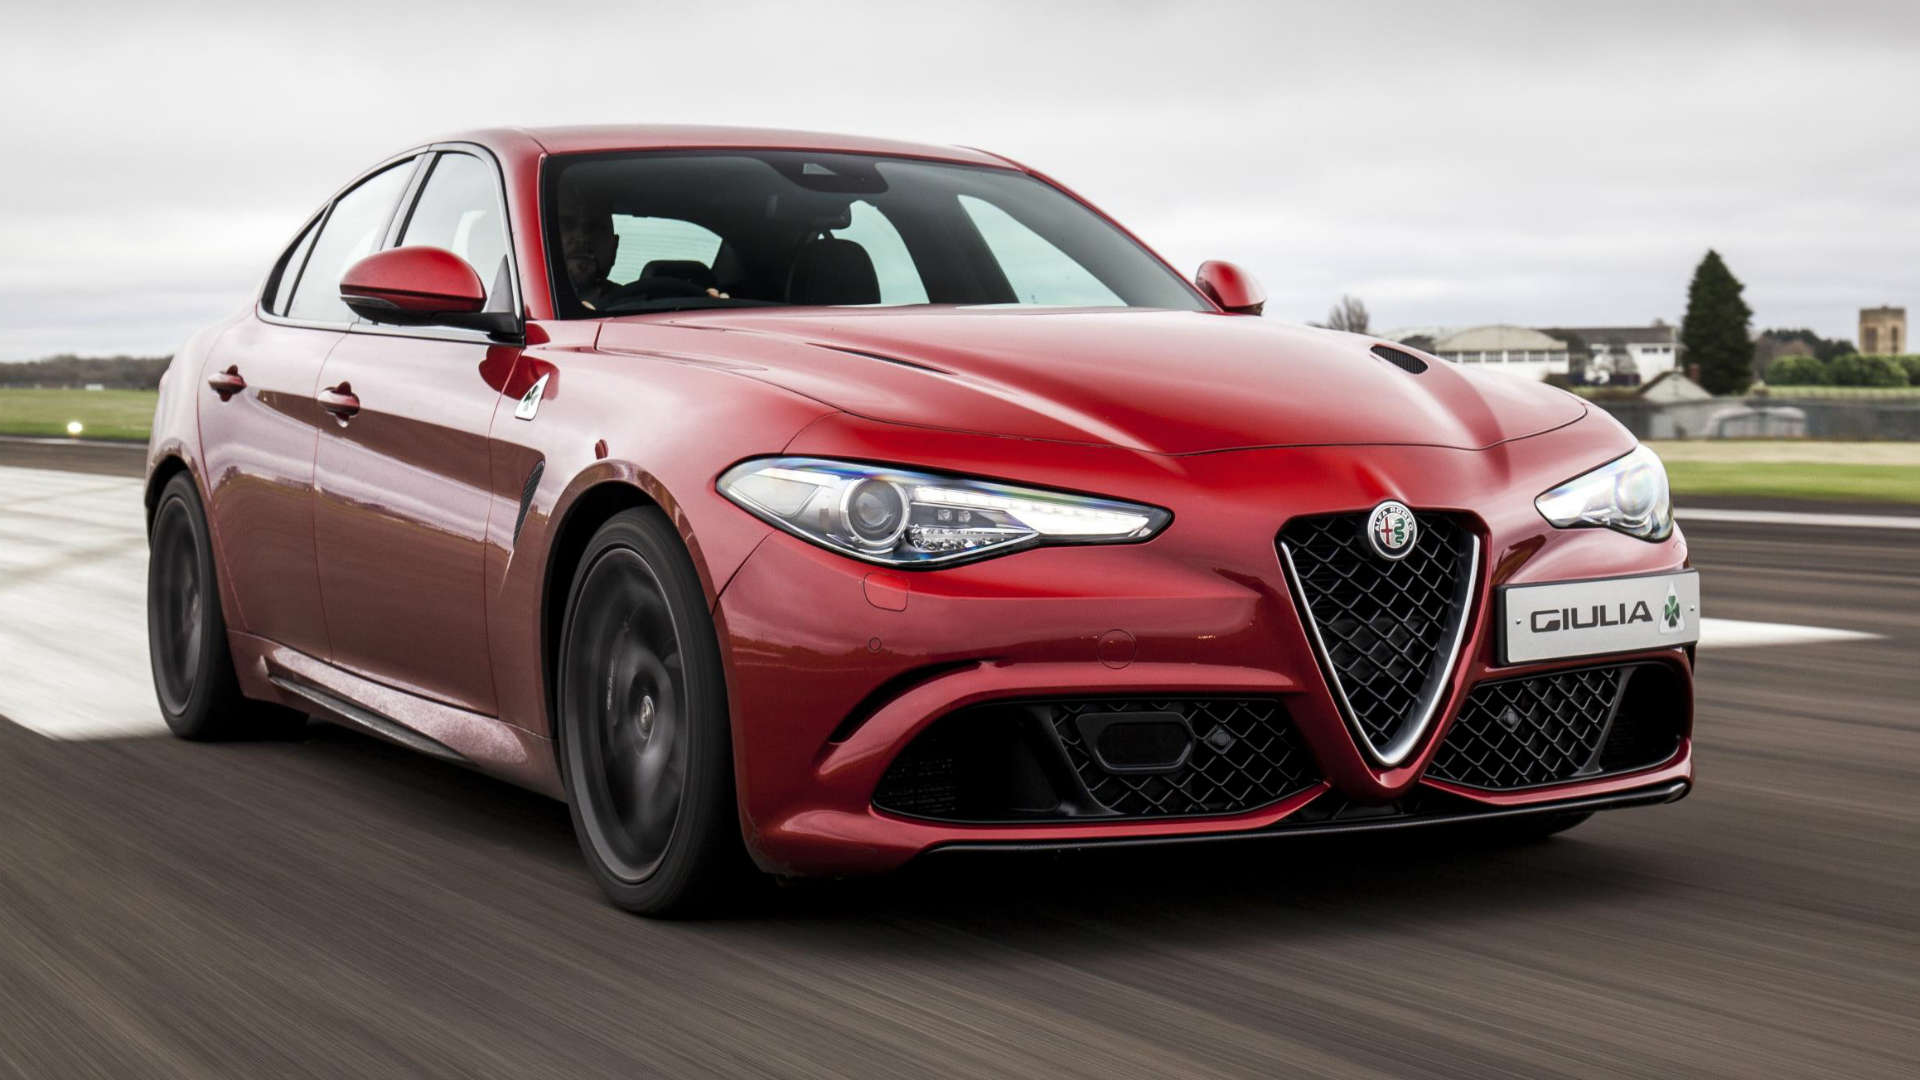 Opinion: Now Is The Time To Buy A Used Alfa Romeo Giulia